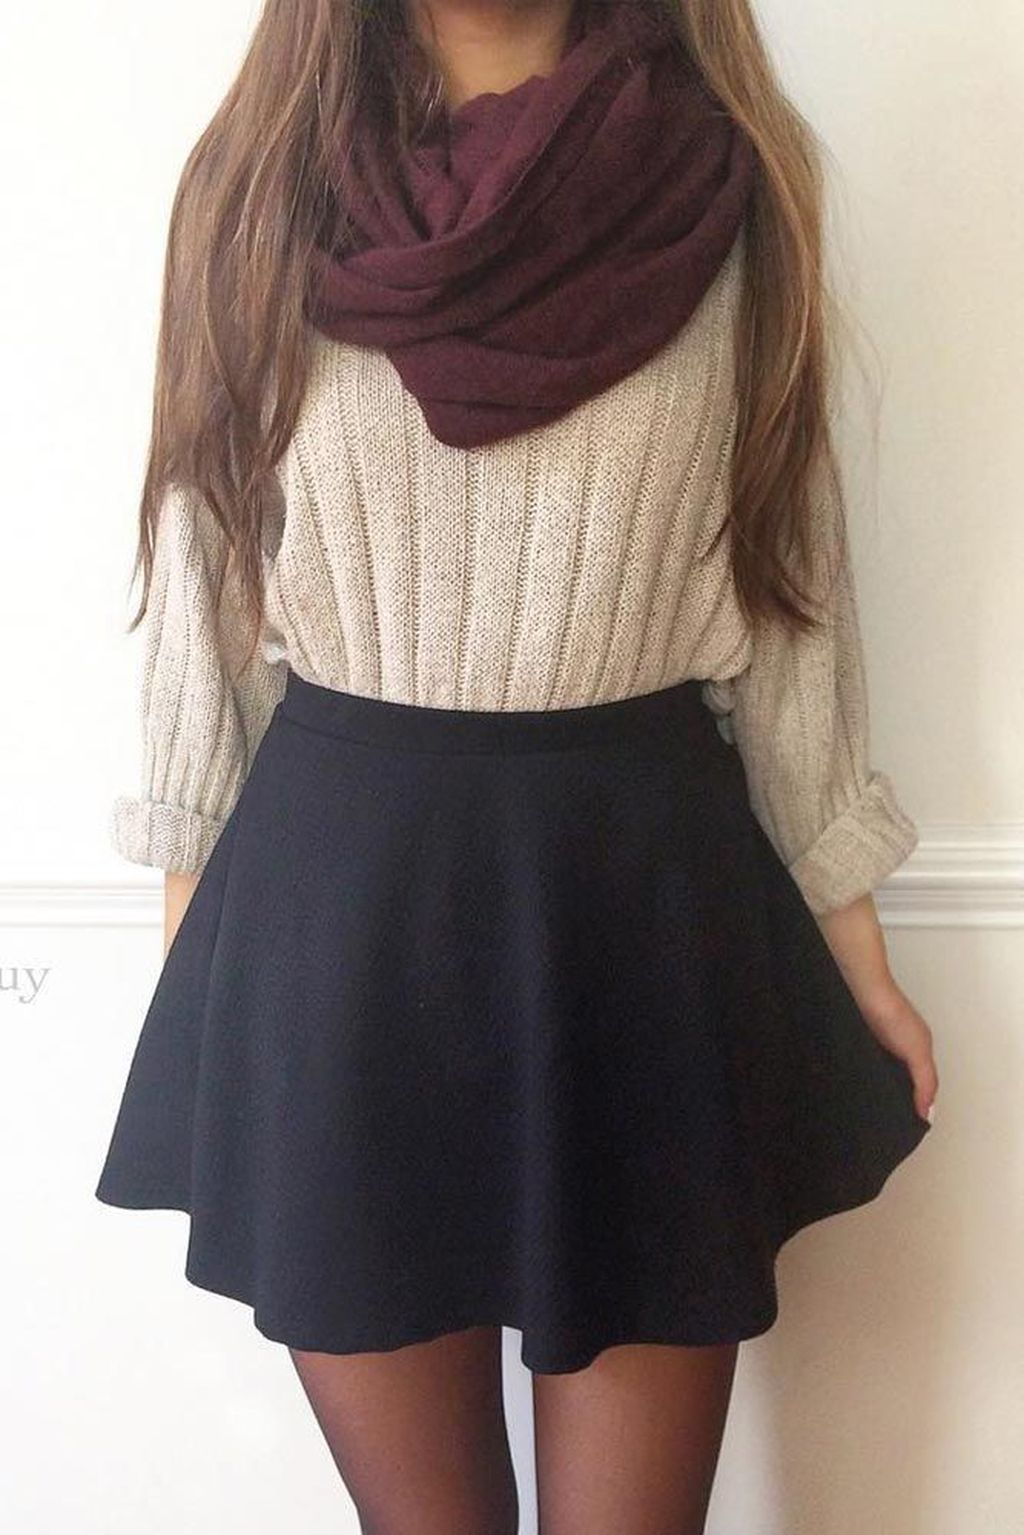 Pin by Lydia Rubio on Outfits | Fashion, Cute winter ...